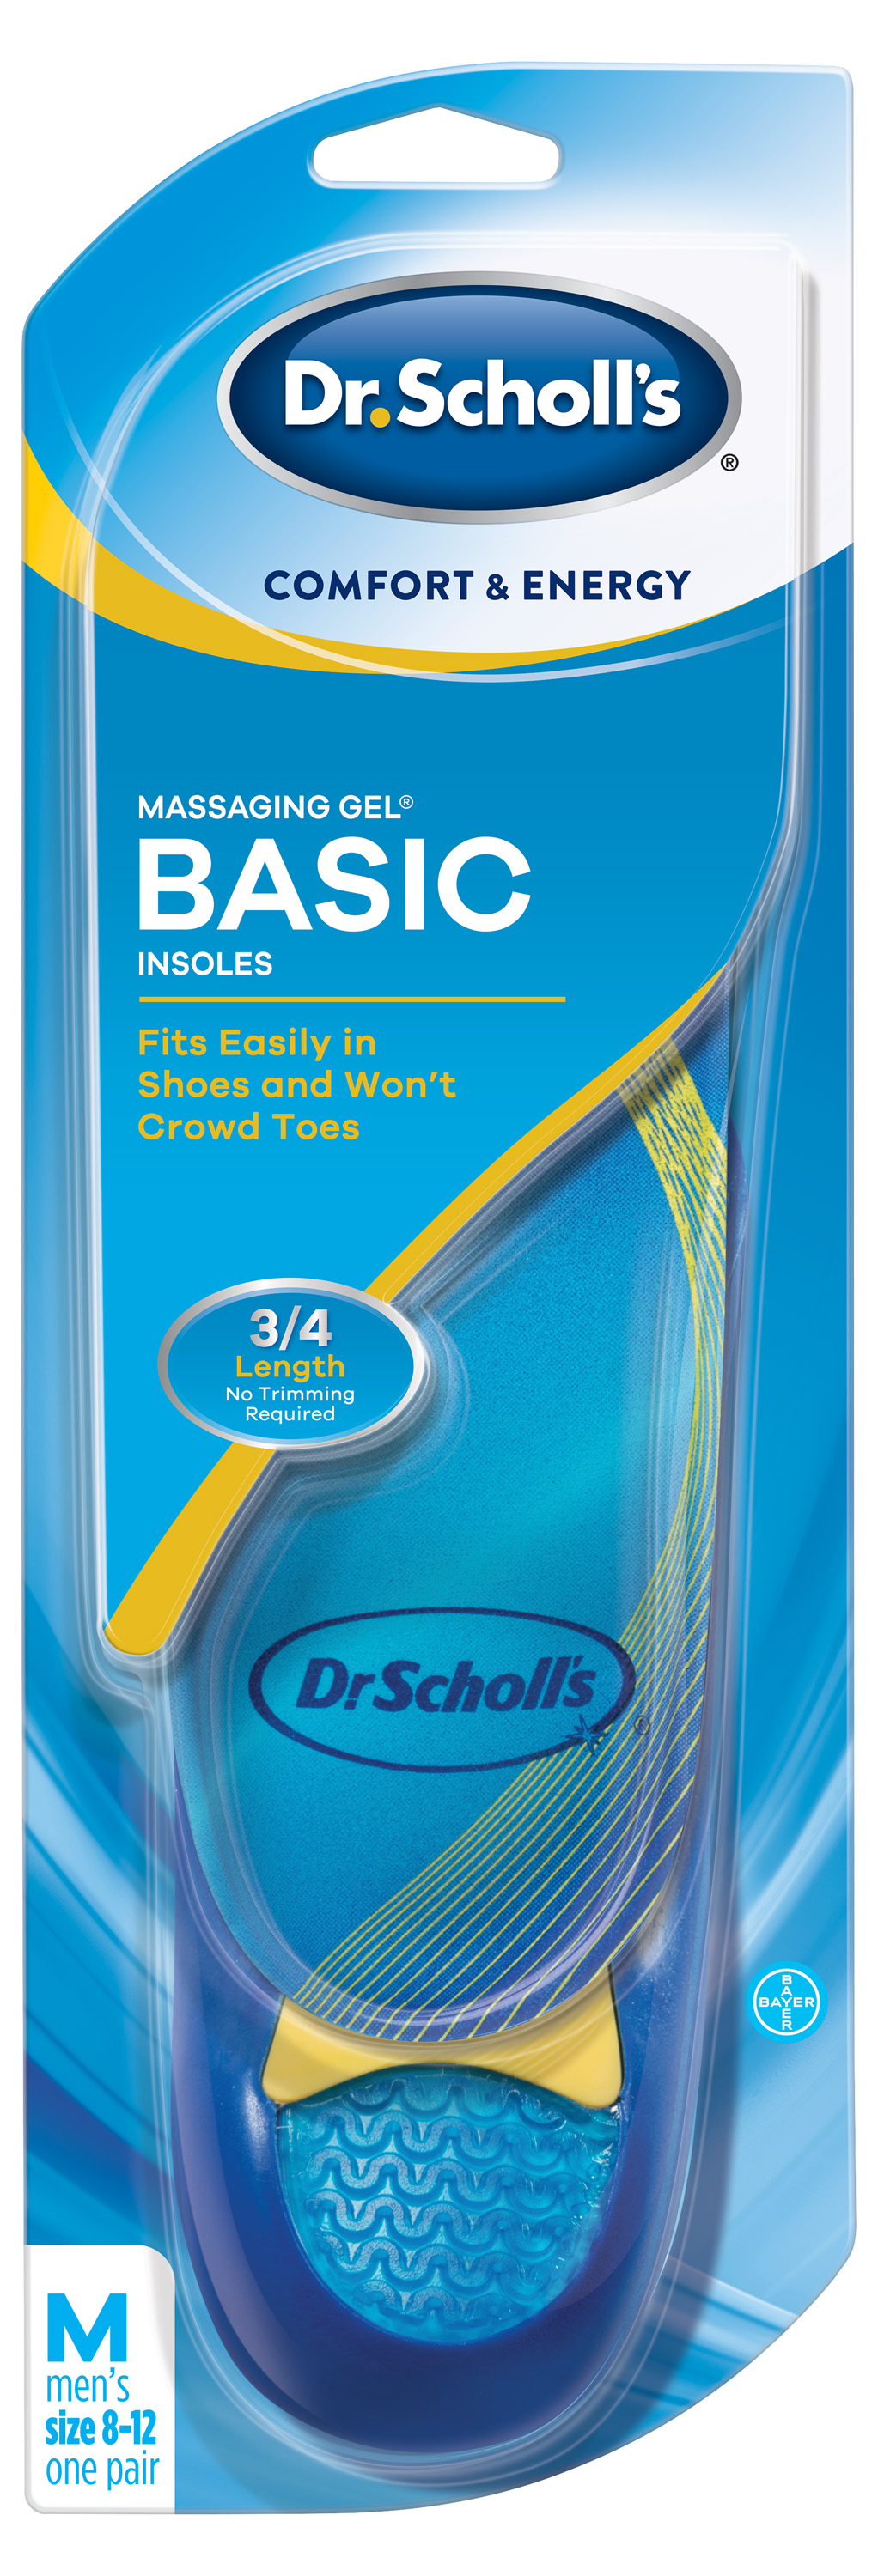 Dr. Scholl's Comfort & Energy Massaging Gel Basic Insoles for Men by Bayer Consumer Products